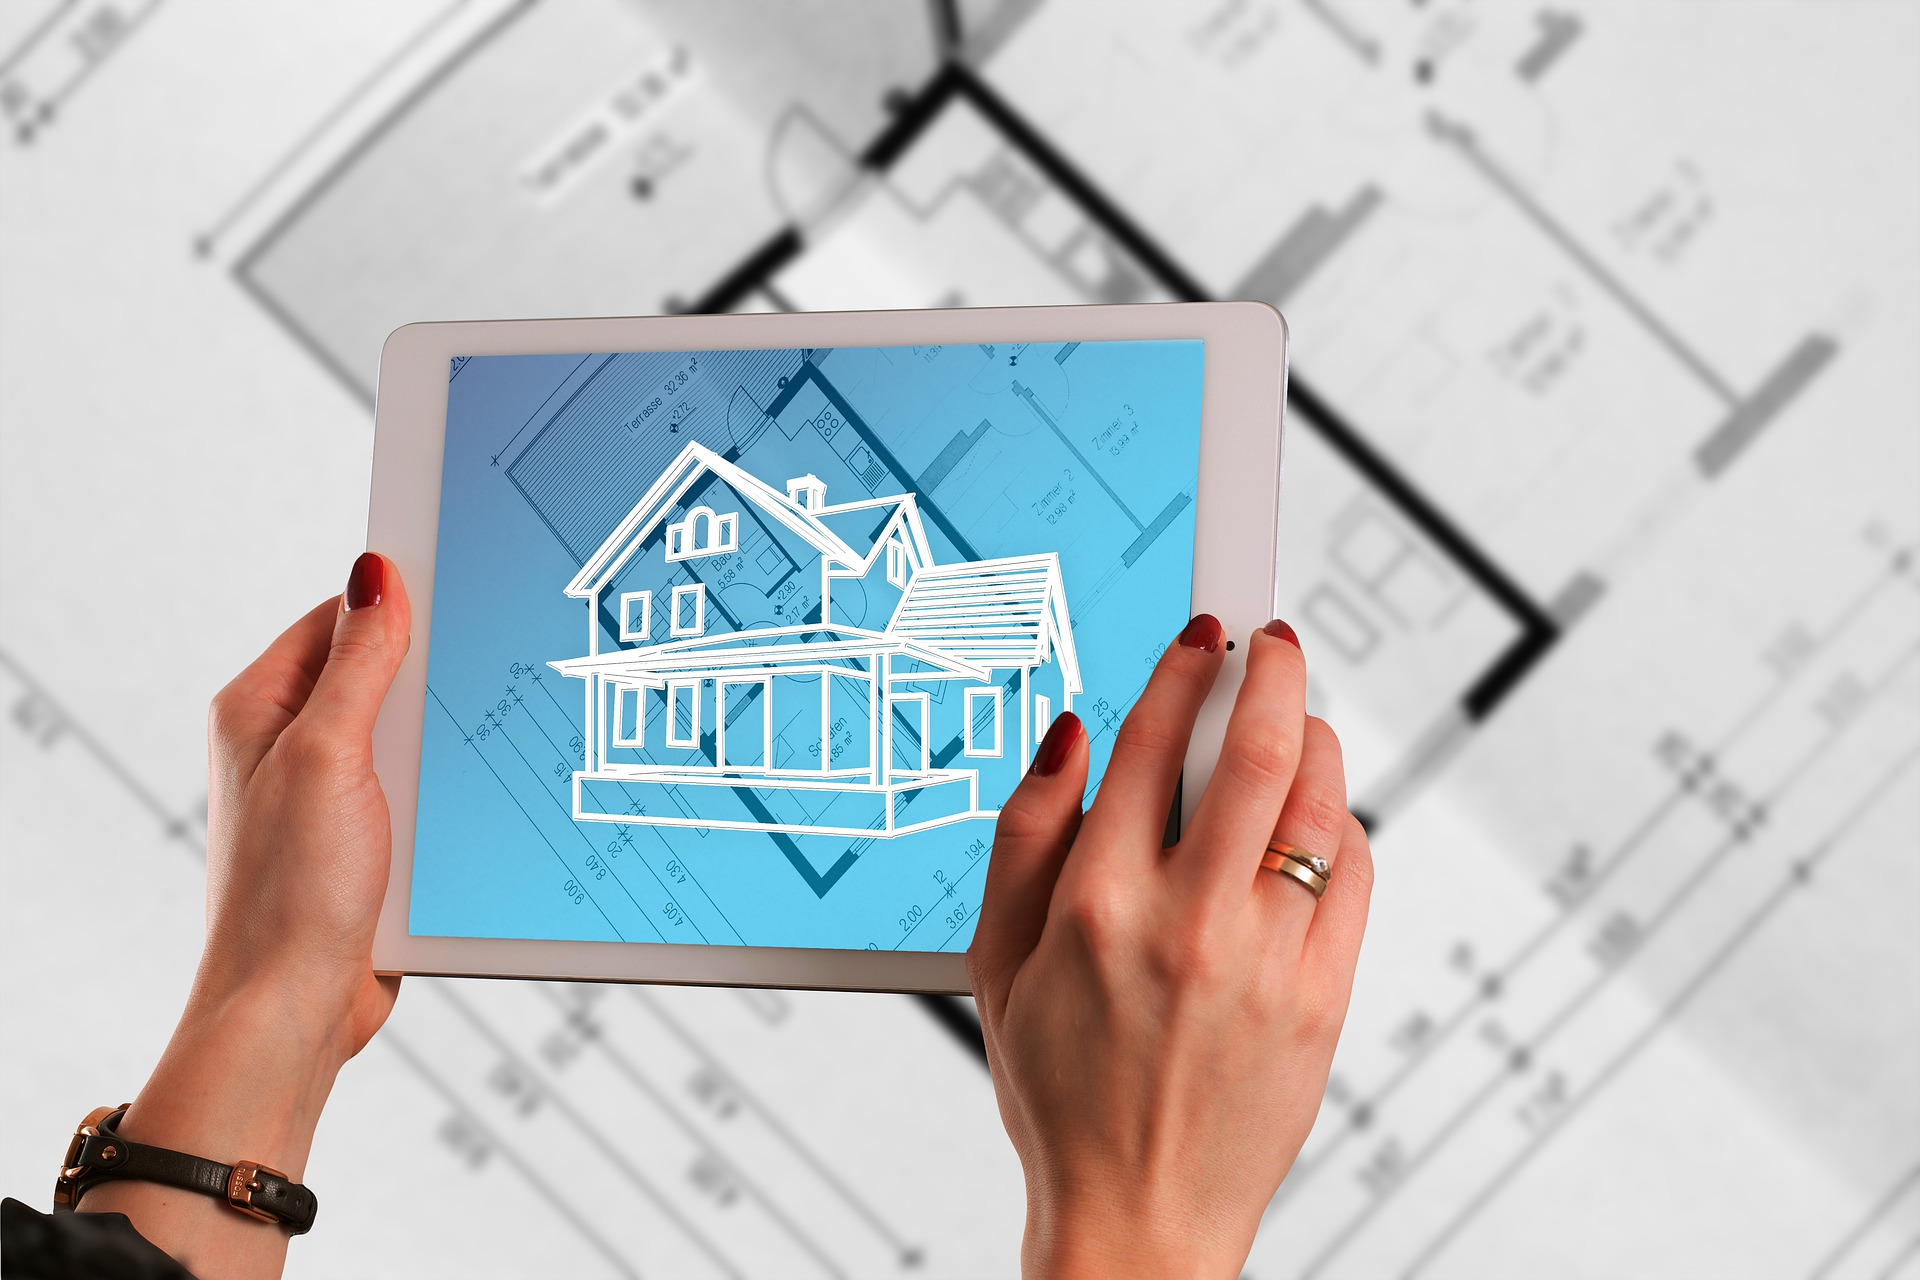 Augmented reality house appearing on tablet held over blueprints